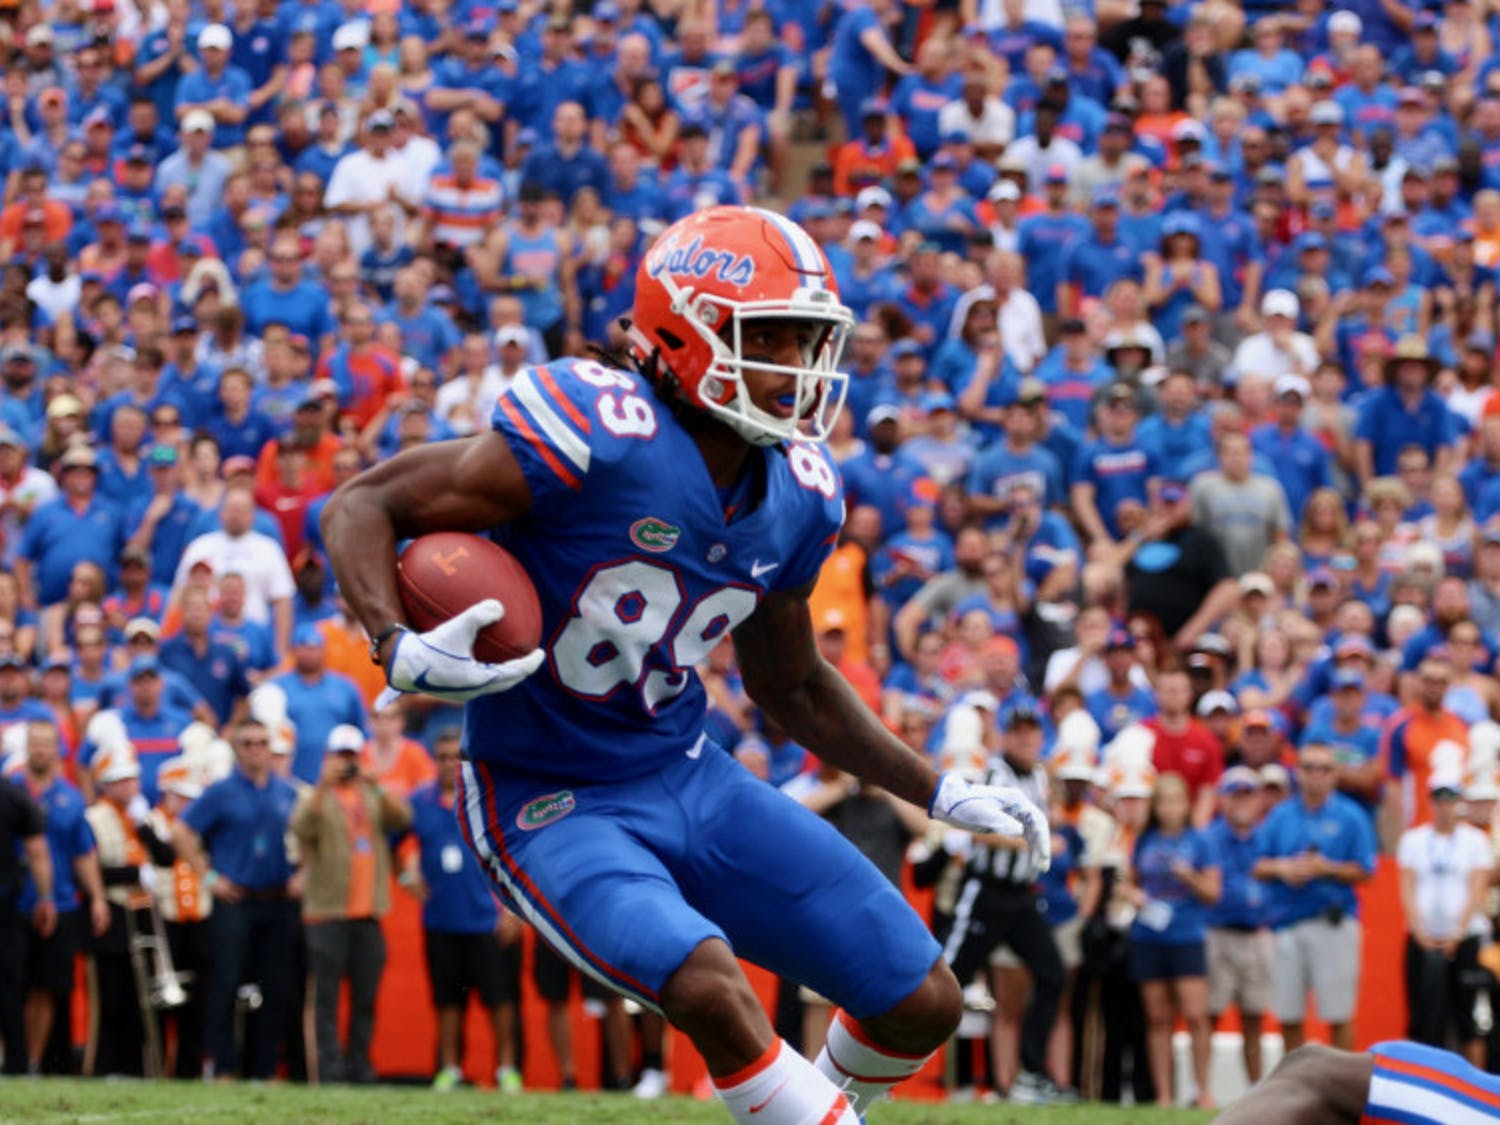 UF wide receiver Tyrie Cleveland runs with the ball after a catch during Florida's 26-10 win against Tennessee on Saturday at Ben Hill Griffin Stadium.